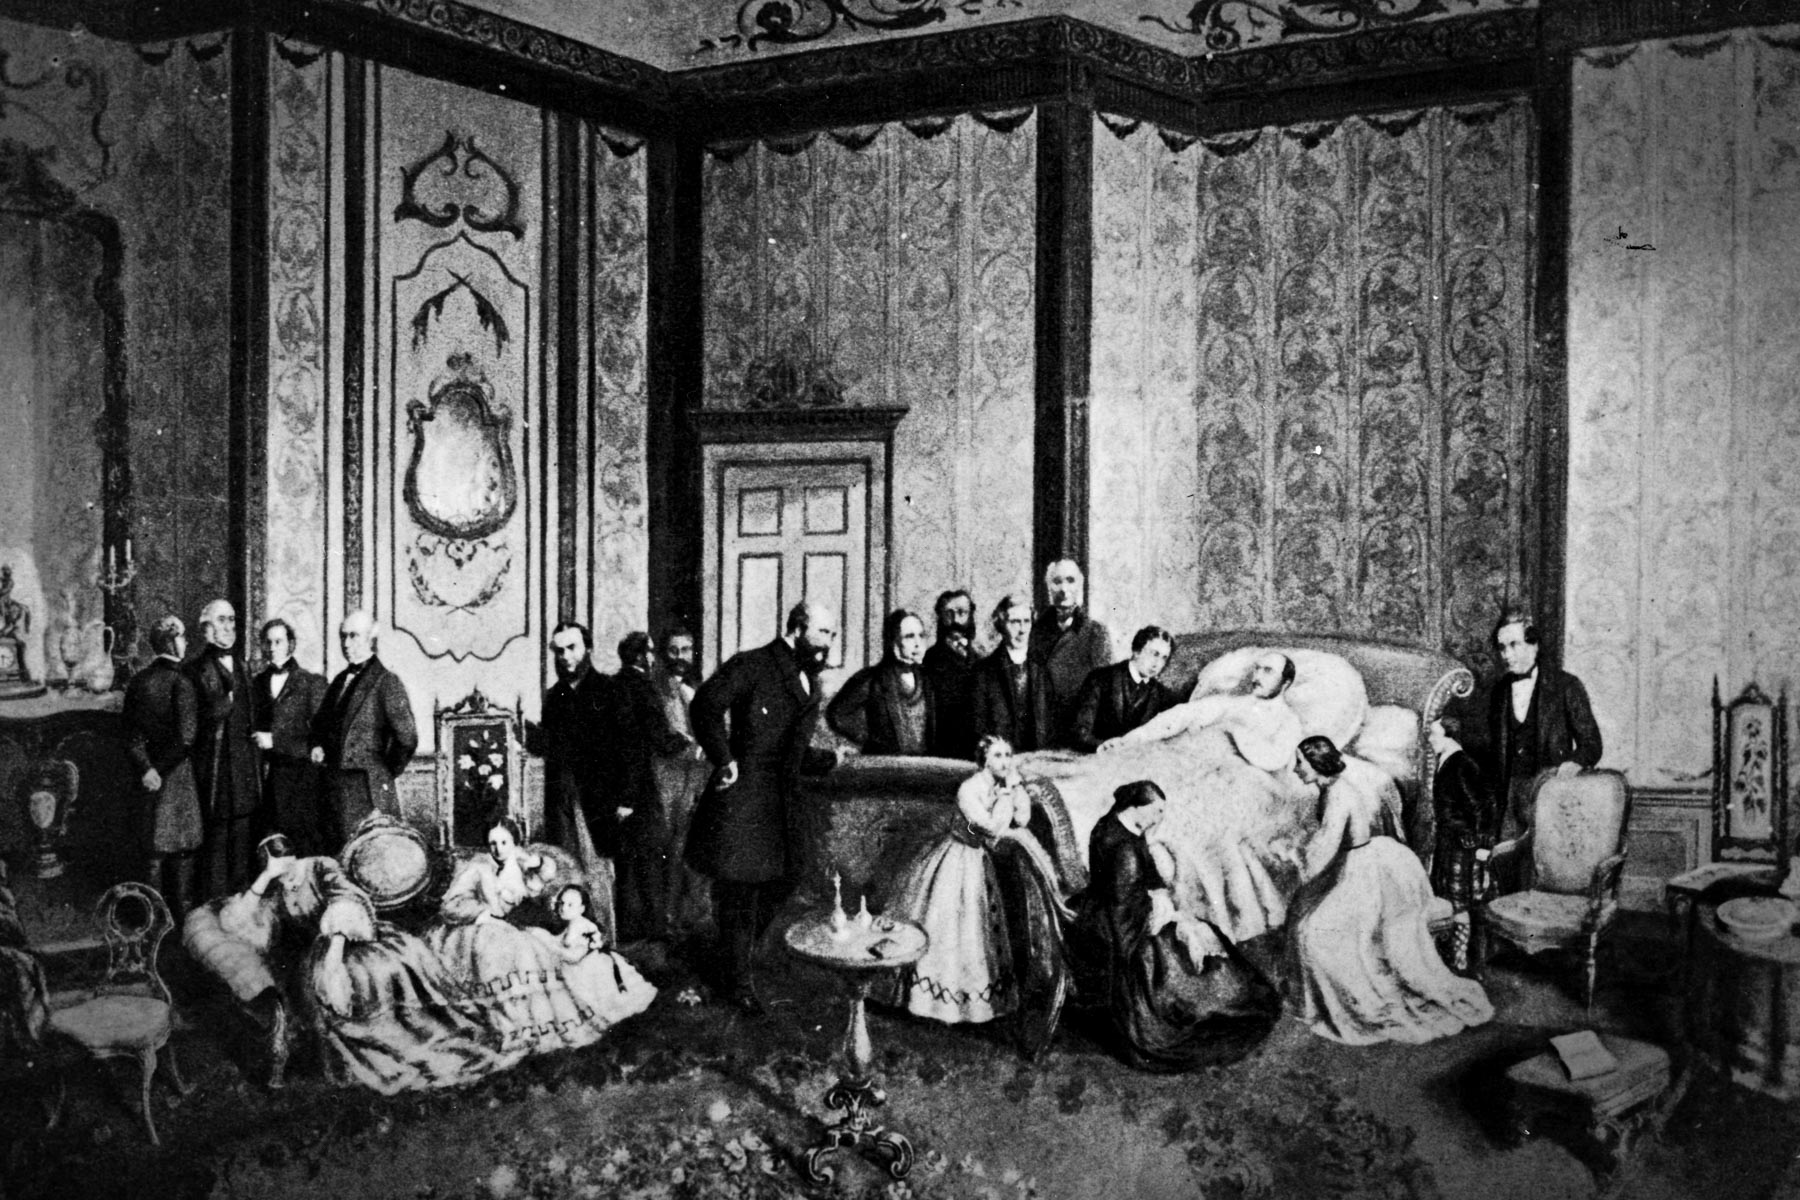 December 1861: Prince Albert, consort of Queen Victoria, lies on his deathbed in the Blue Room at Windsor Castle. He succumbed to typhoid fever on 14 December. (Photograph by Hulton Archive/ Getty Images)